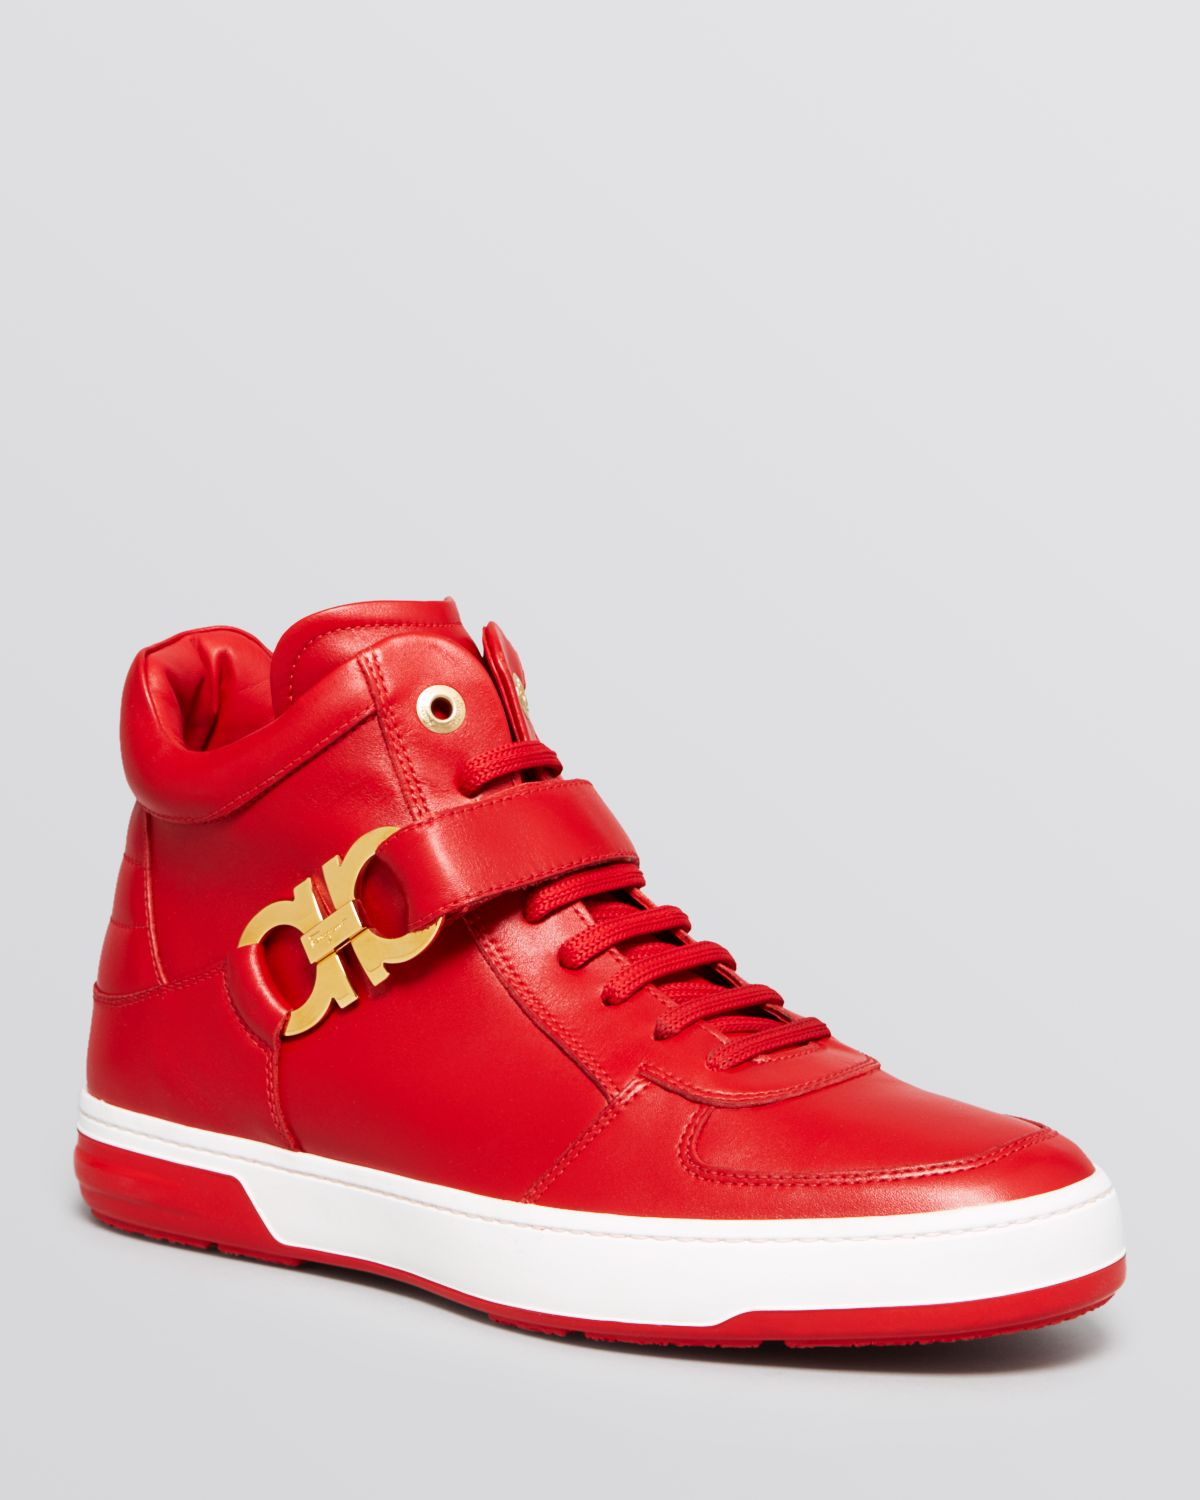 Lyst - Ferragamo Nayon High Top Sneakers in Red for Men f2f3832908